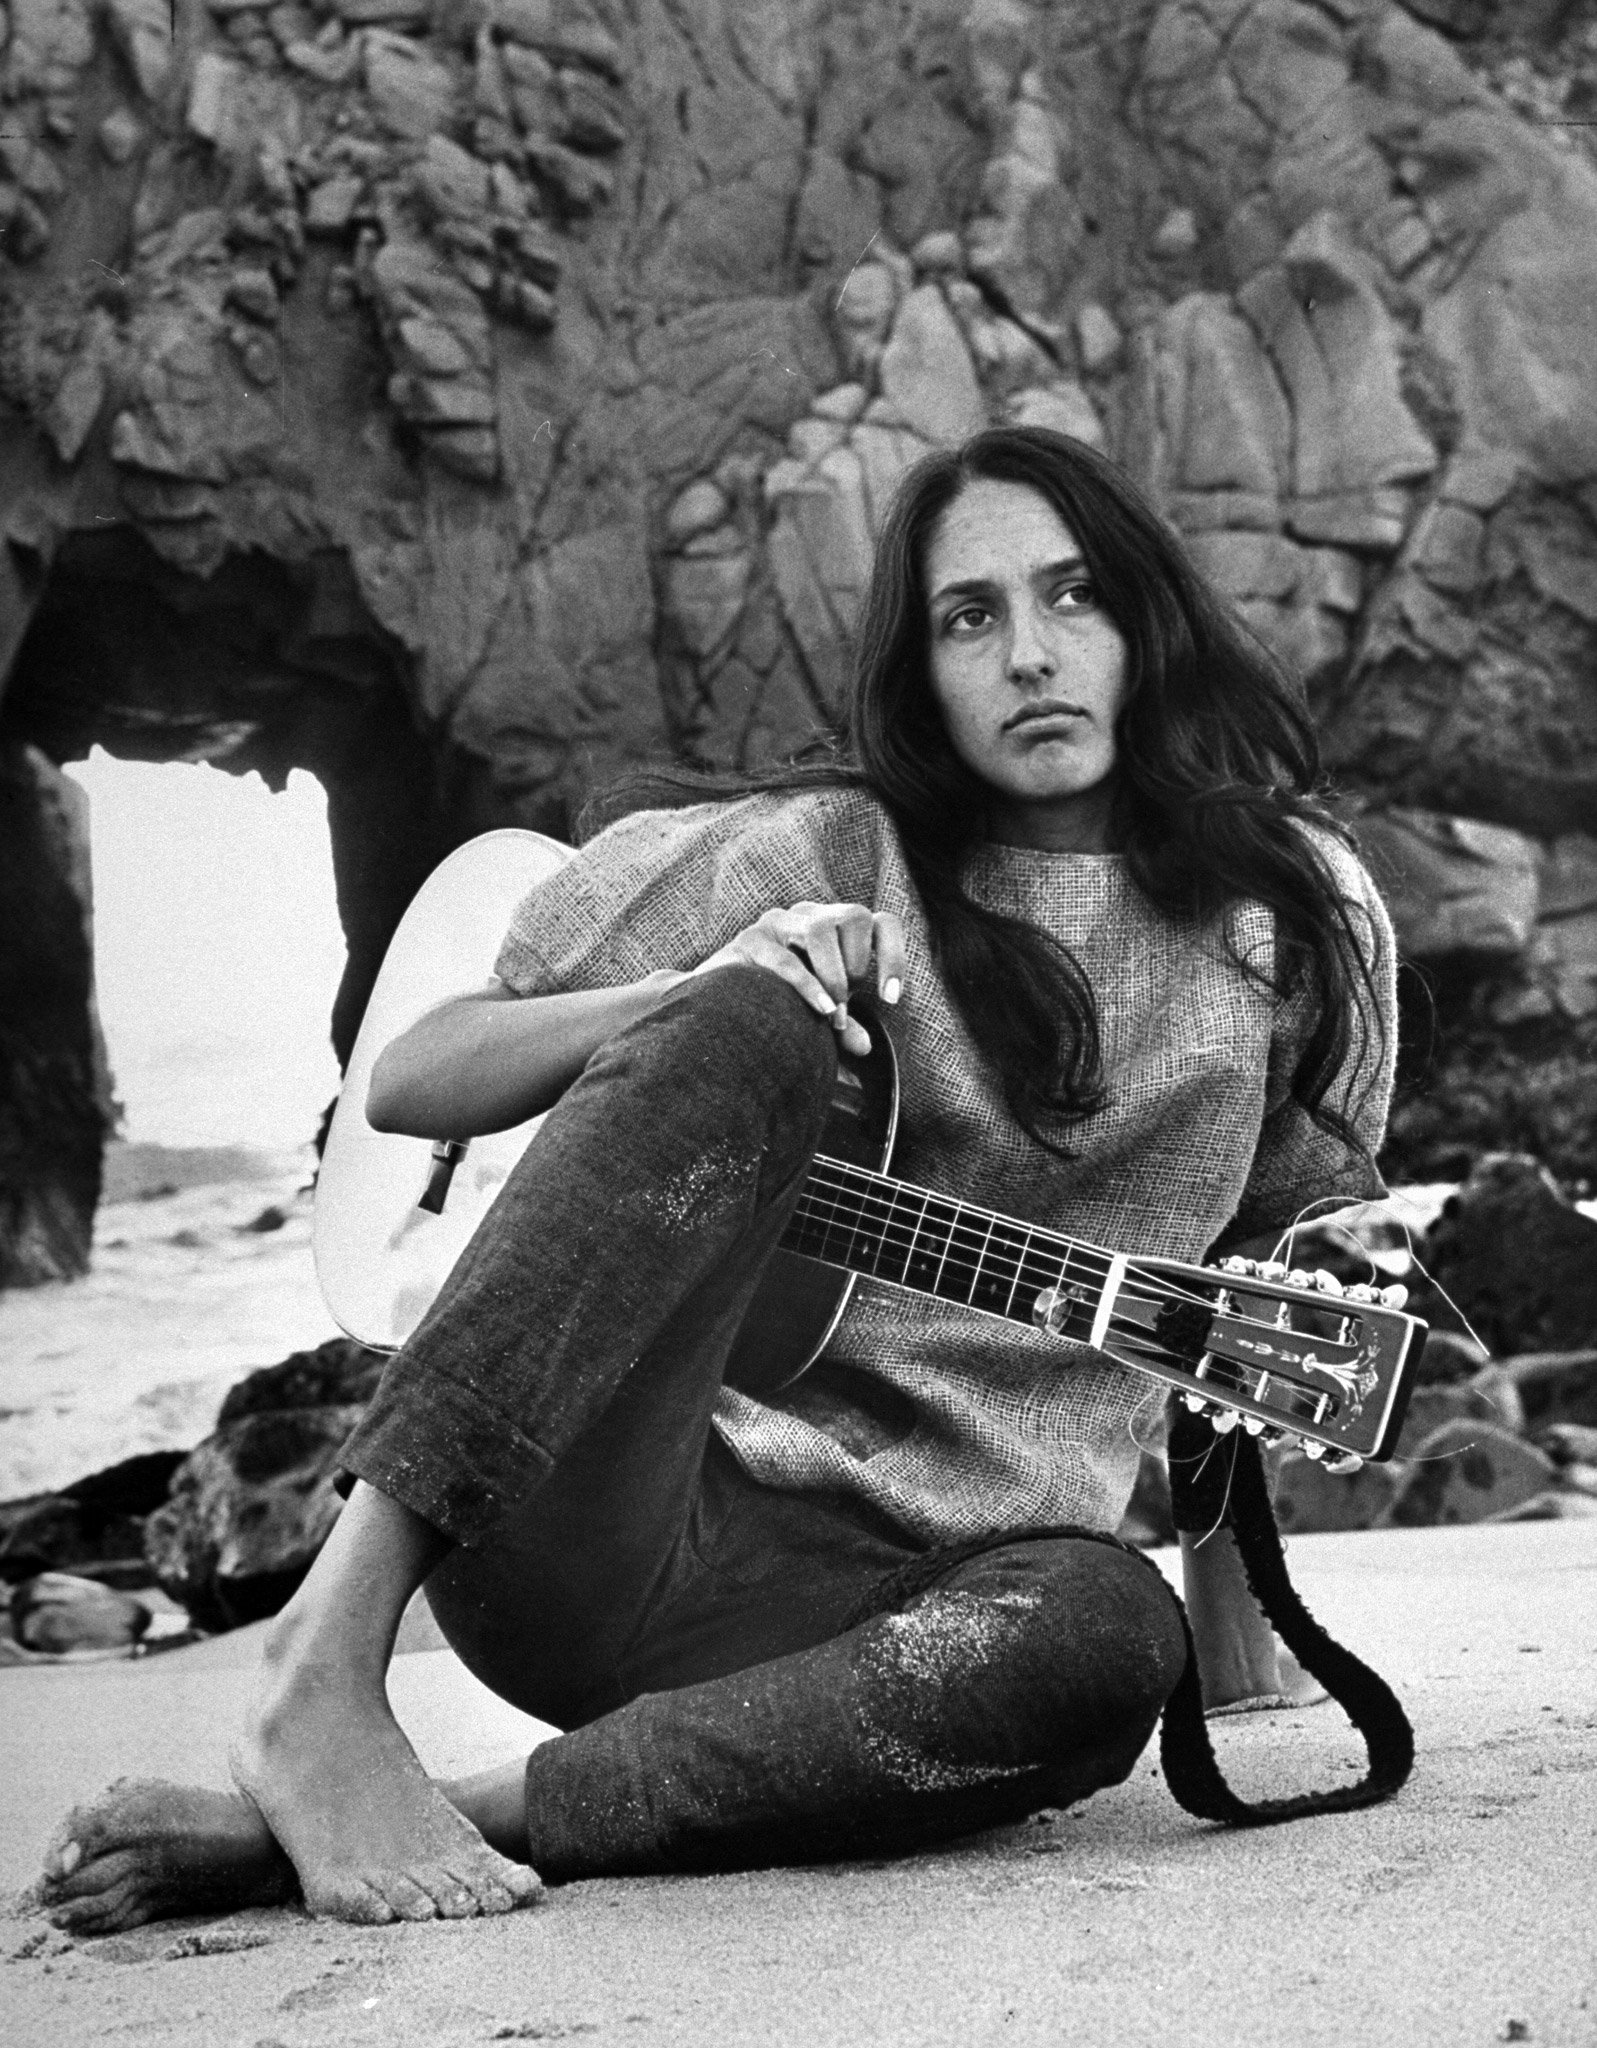 Joan Baez - Award winning folk singer, songwriter, musician, and activist